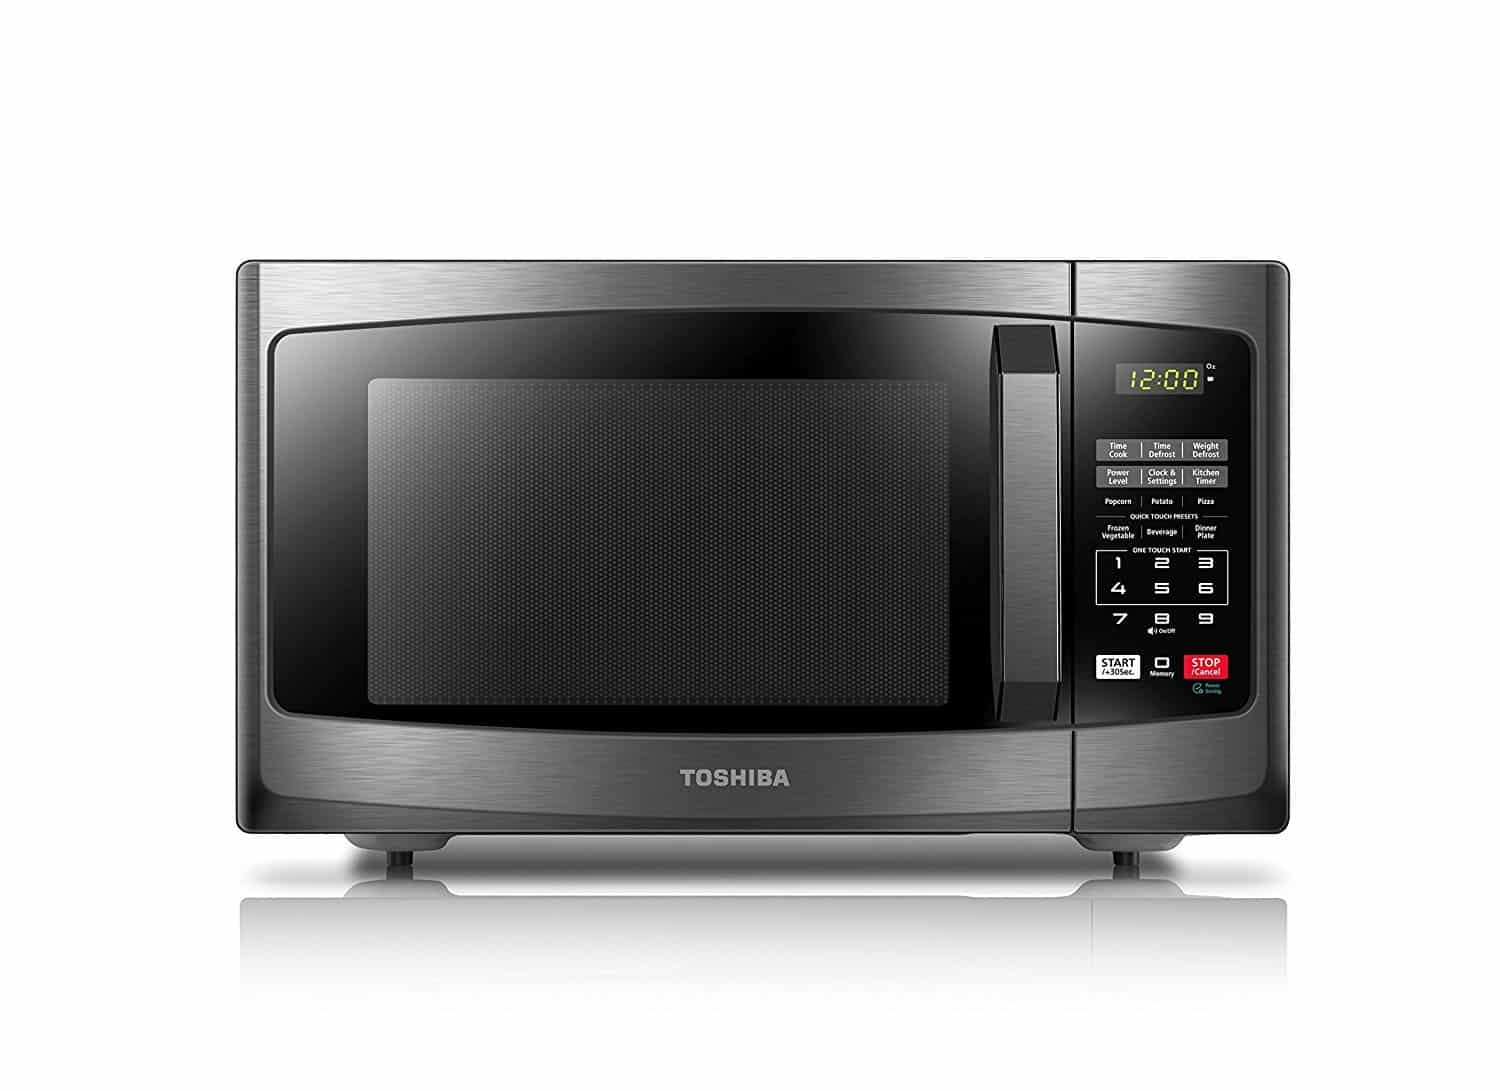 image of the Toshiba compact EM925A5A-BS microwave oven